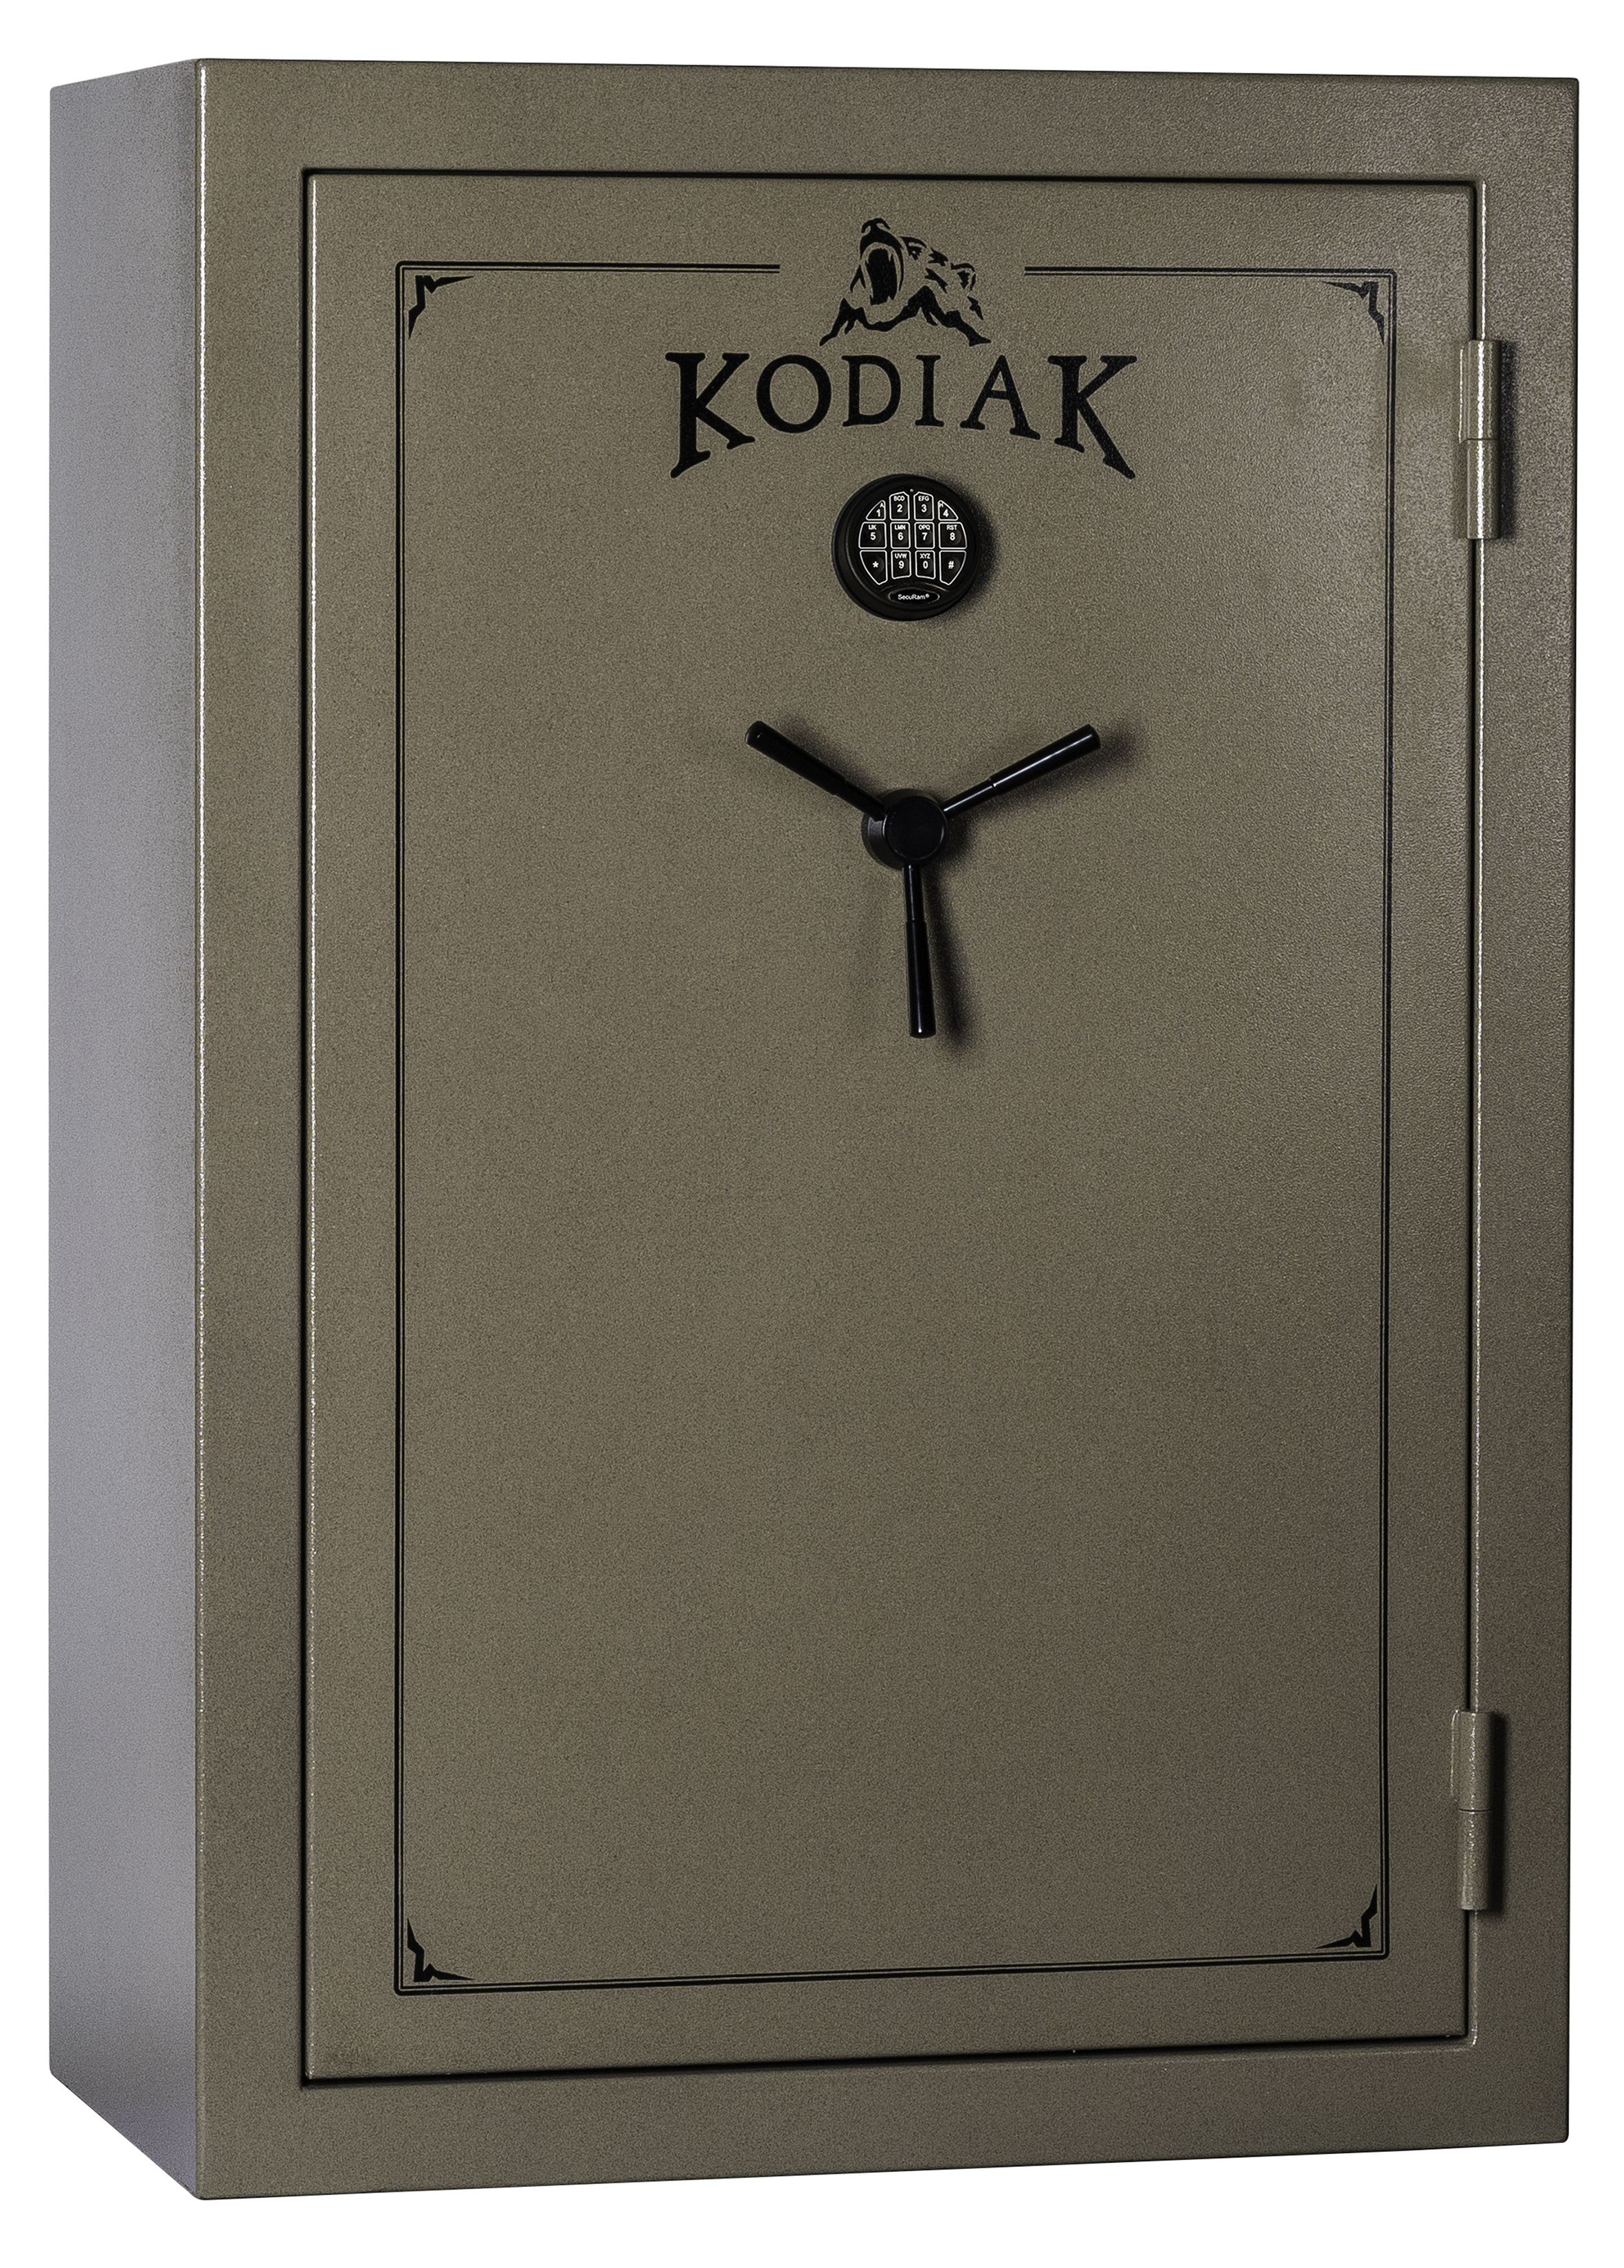 Kodiak K5940EX 60 Minute Fire Safe: 52 Gun Safe